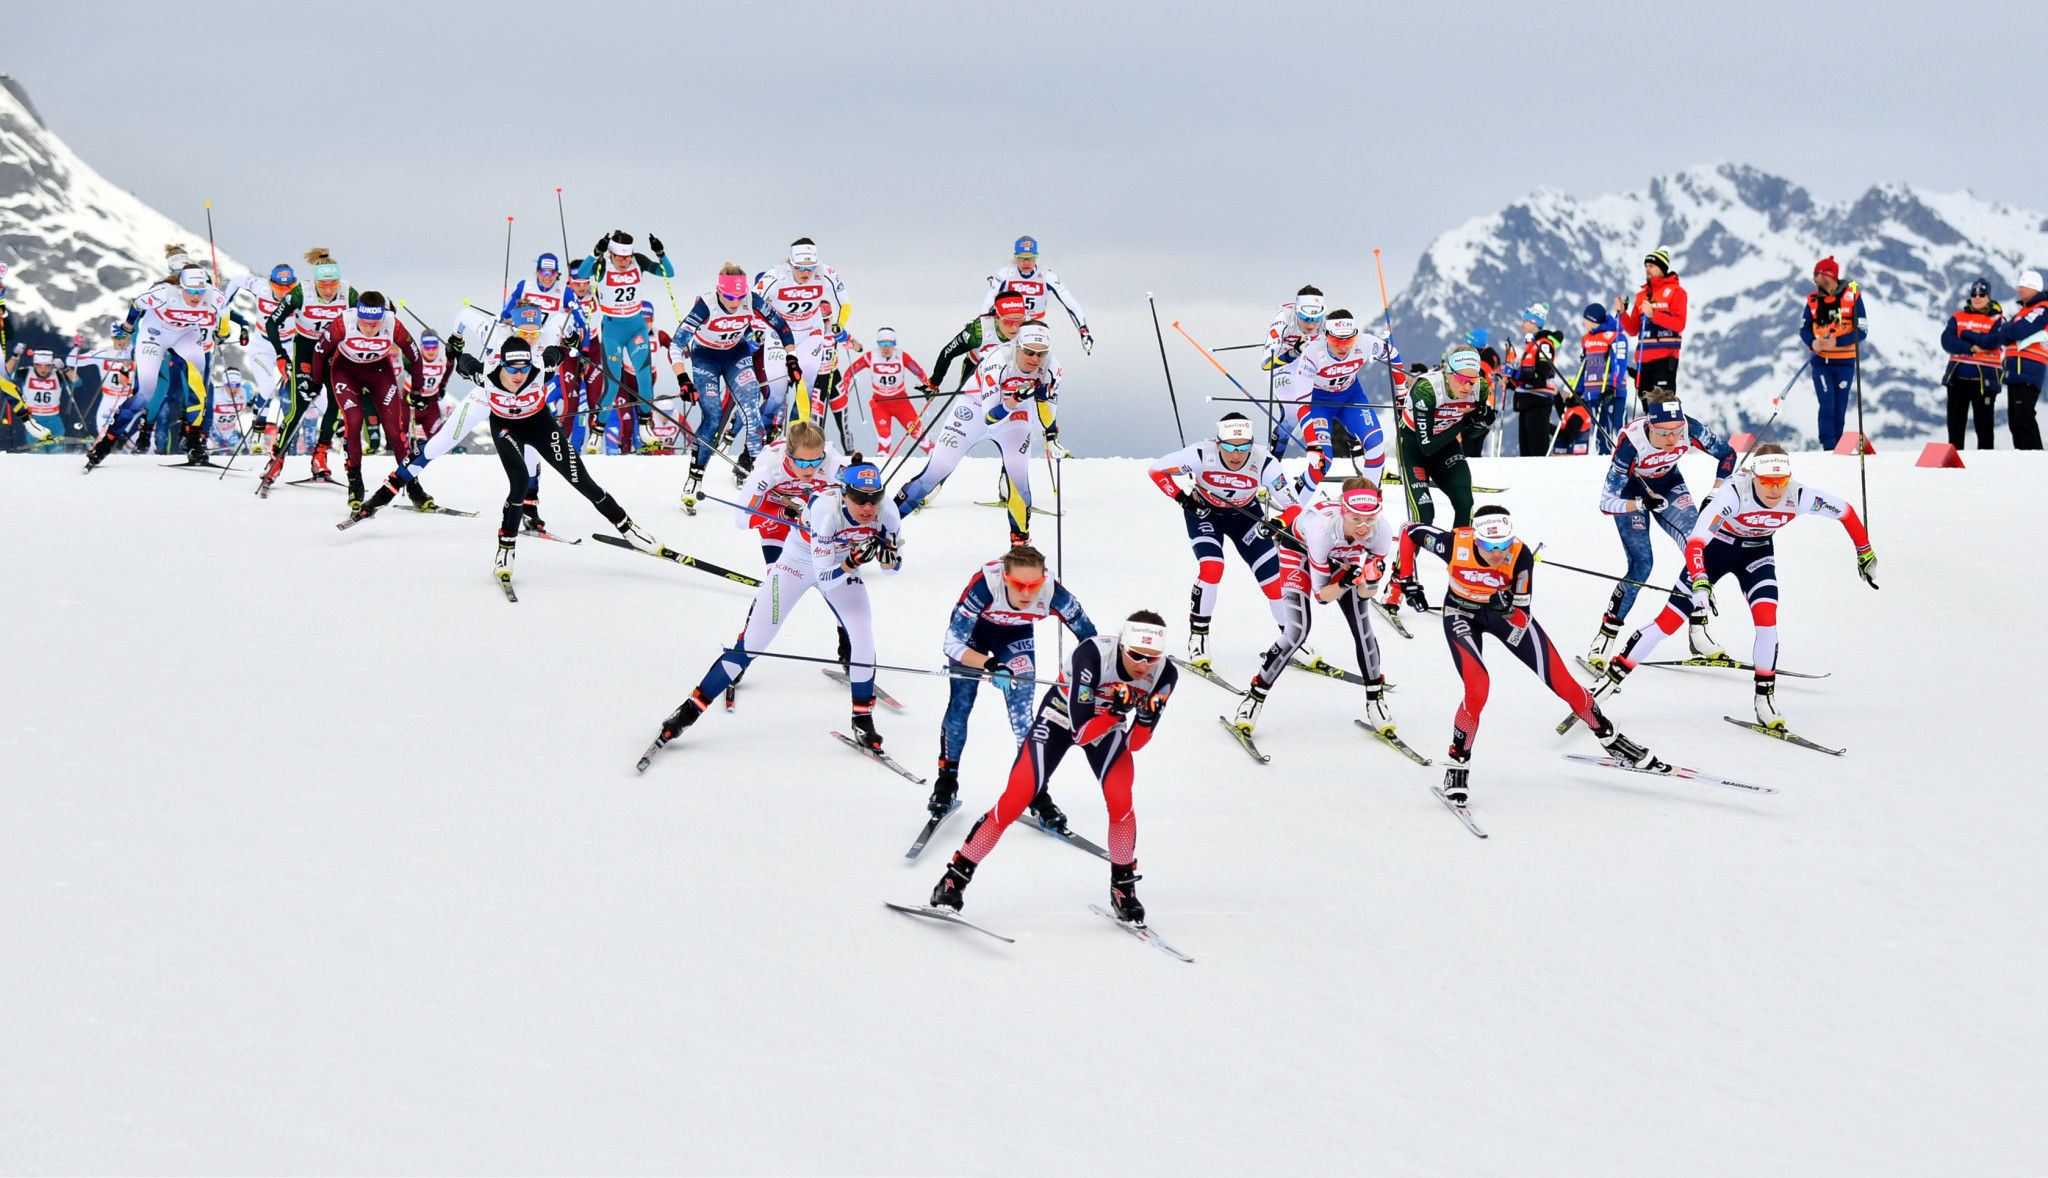 Concerns have been raised over possible blood doping amid top cross-country skiers ©Getty Images